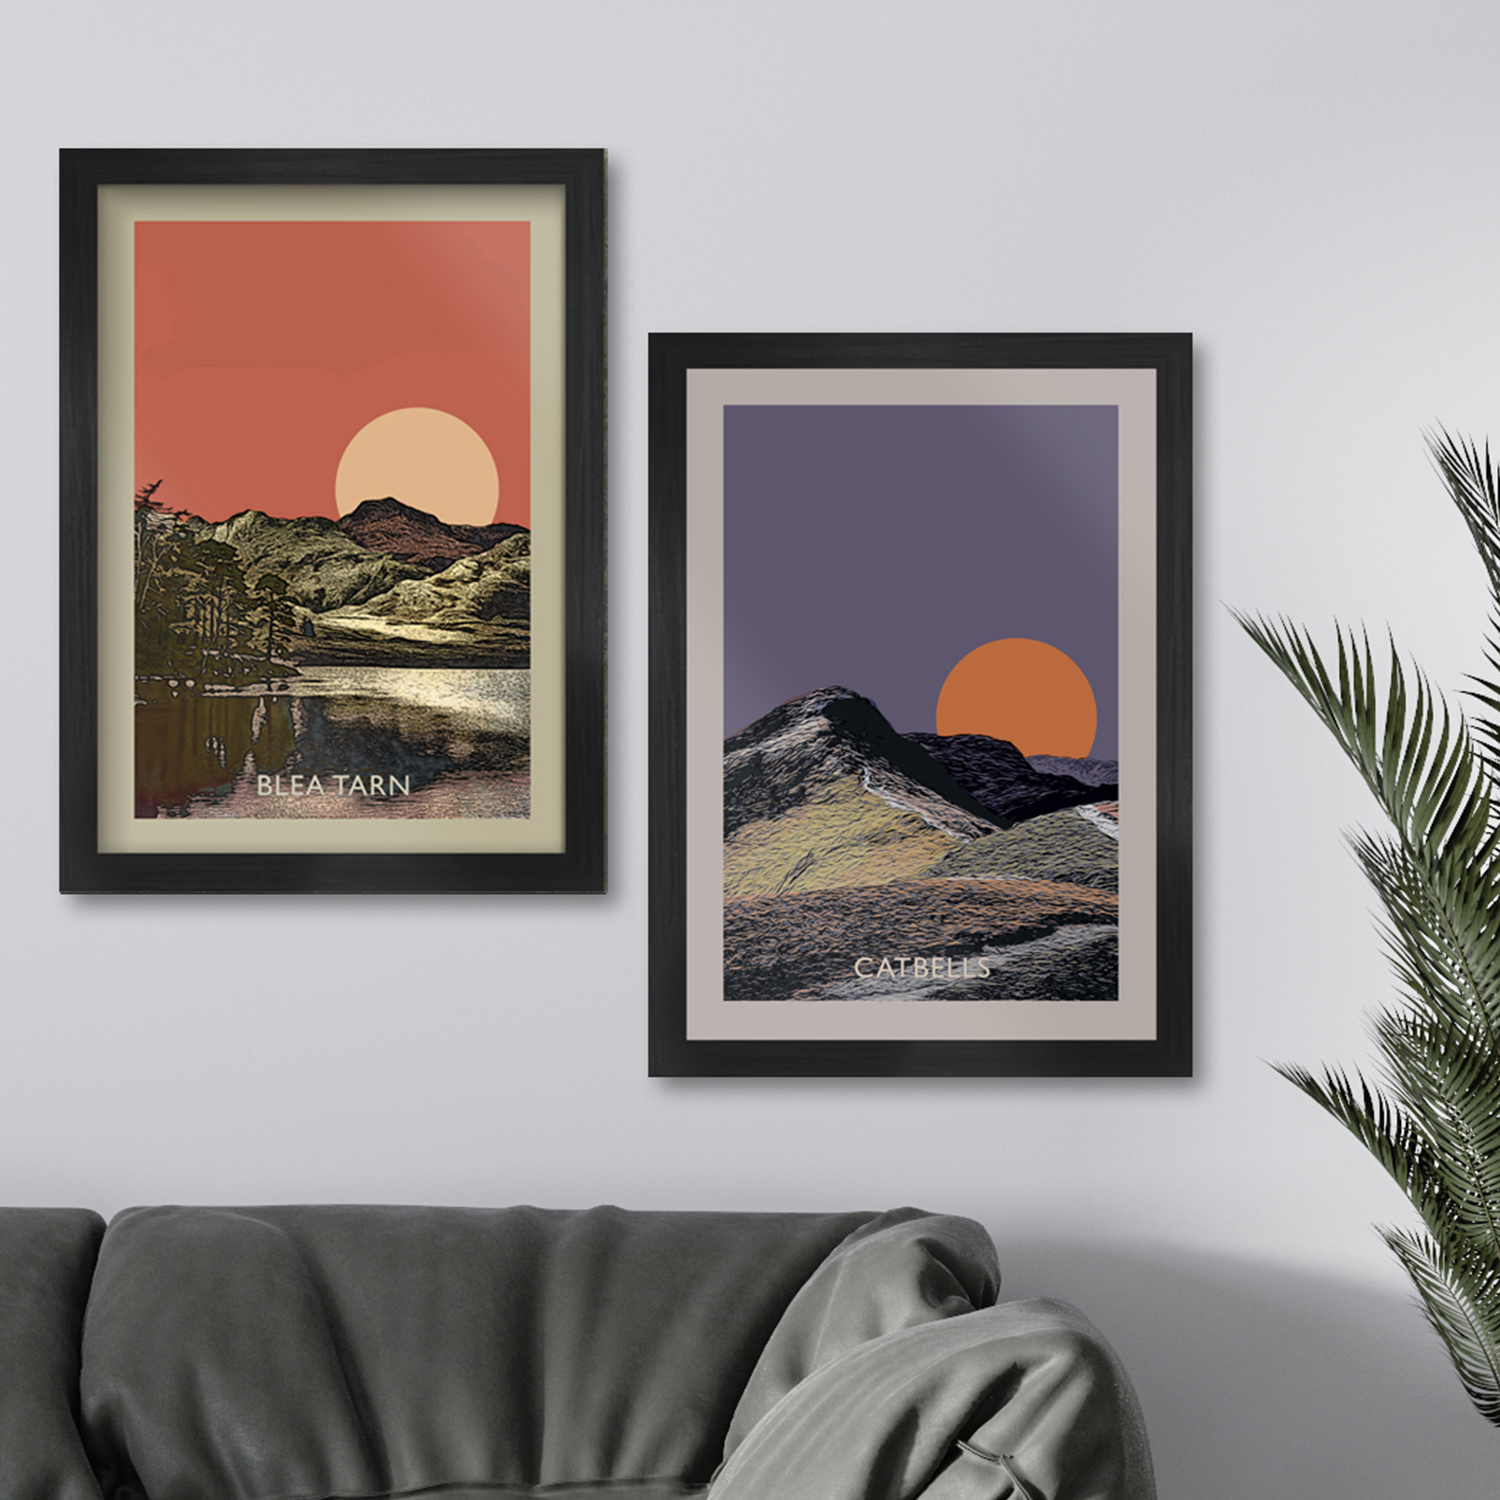 Blea Tarn and Catbells Sunset - Lake District Poster Print